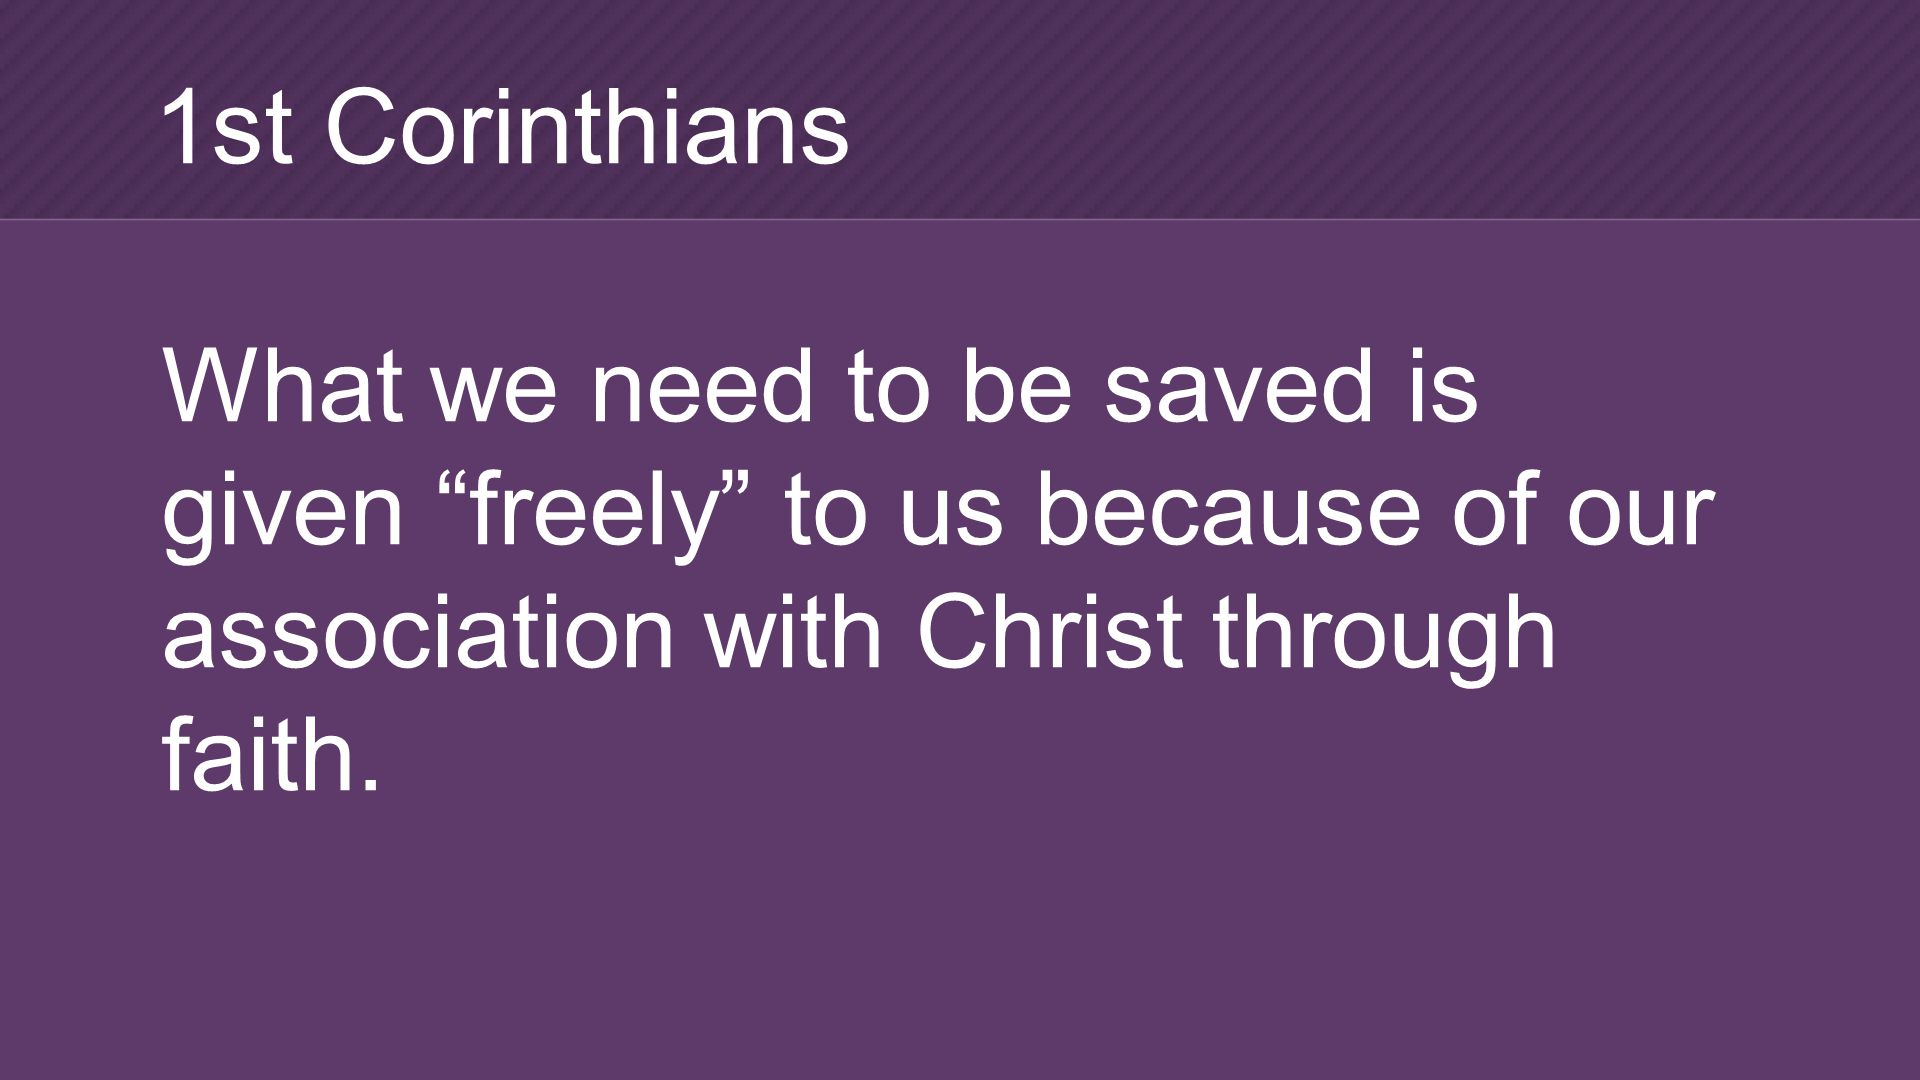 What we need to be saved is given freely to us because of our association with Christ through faith.